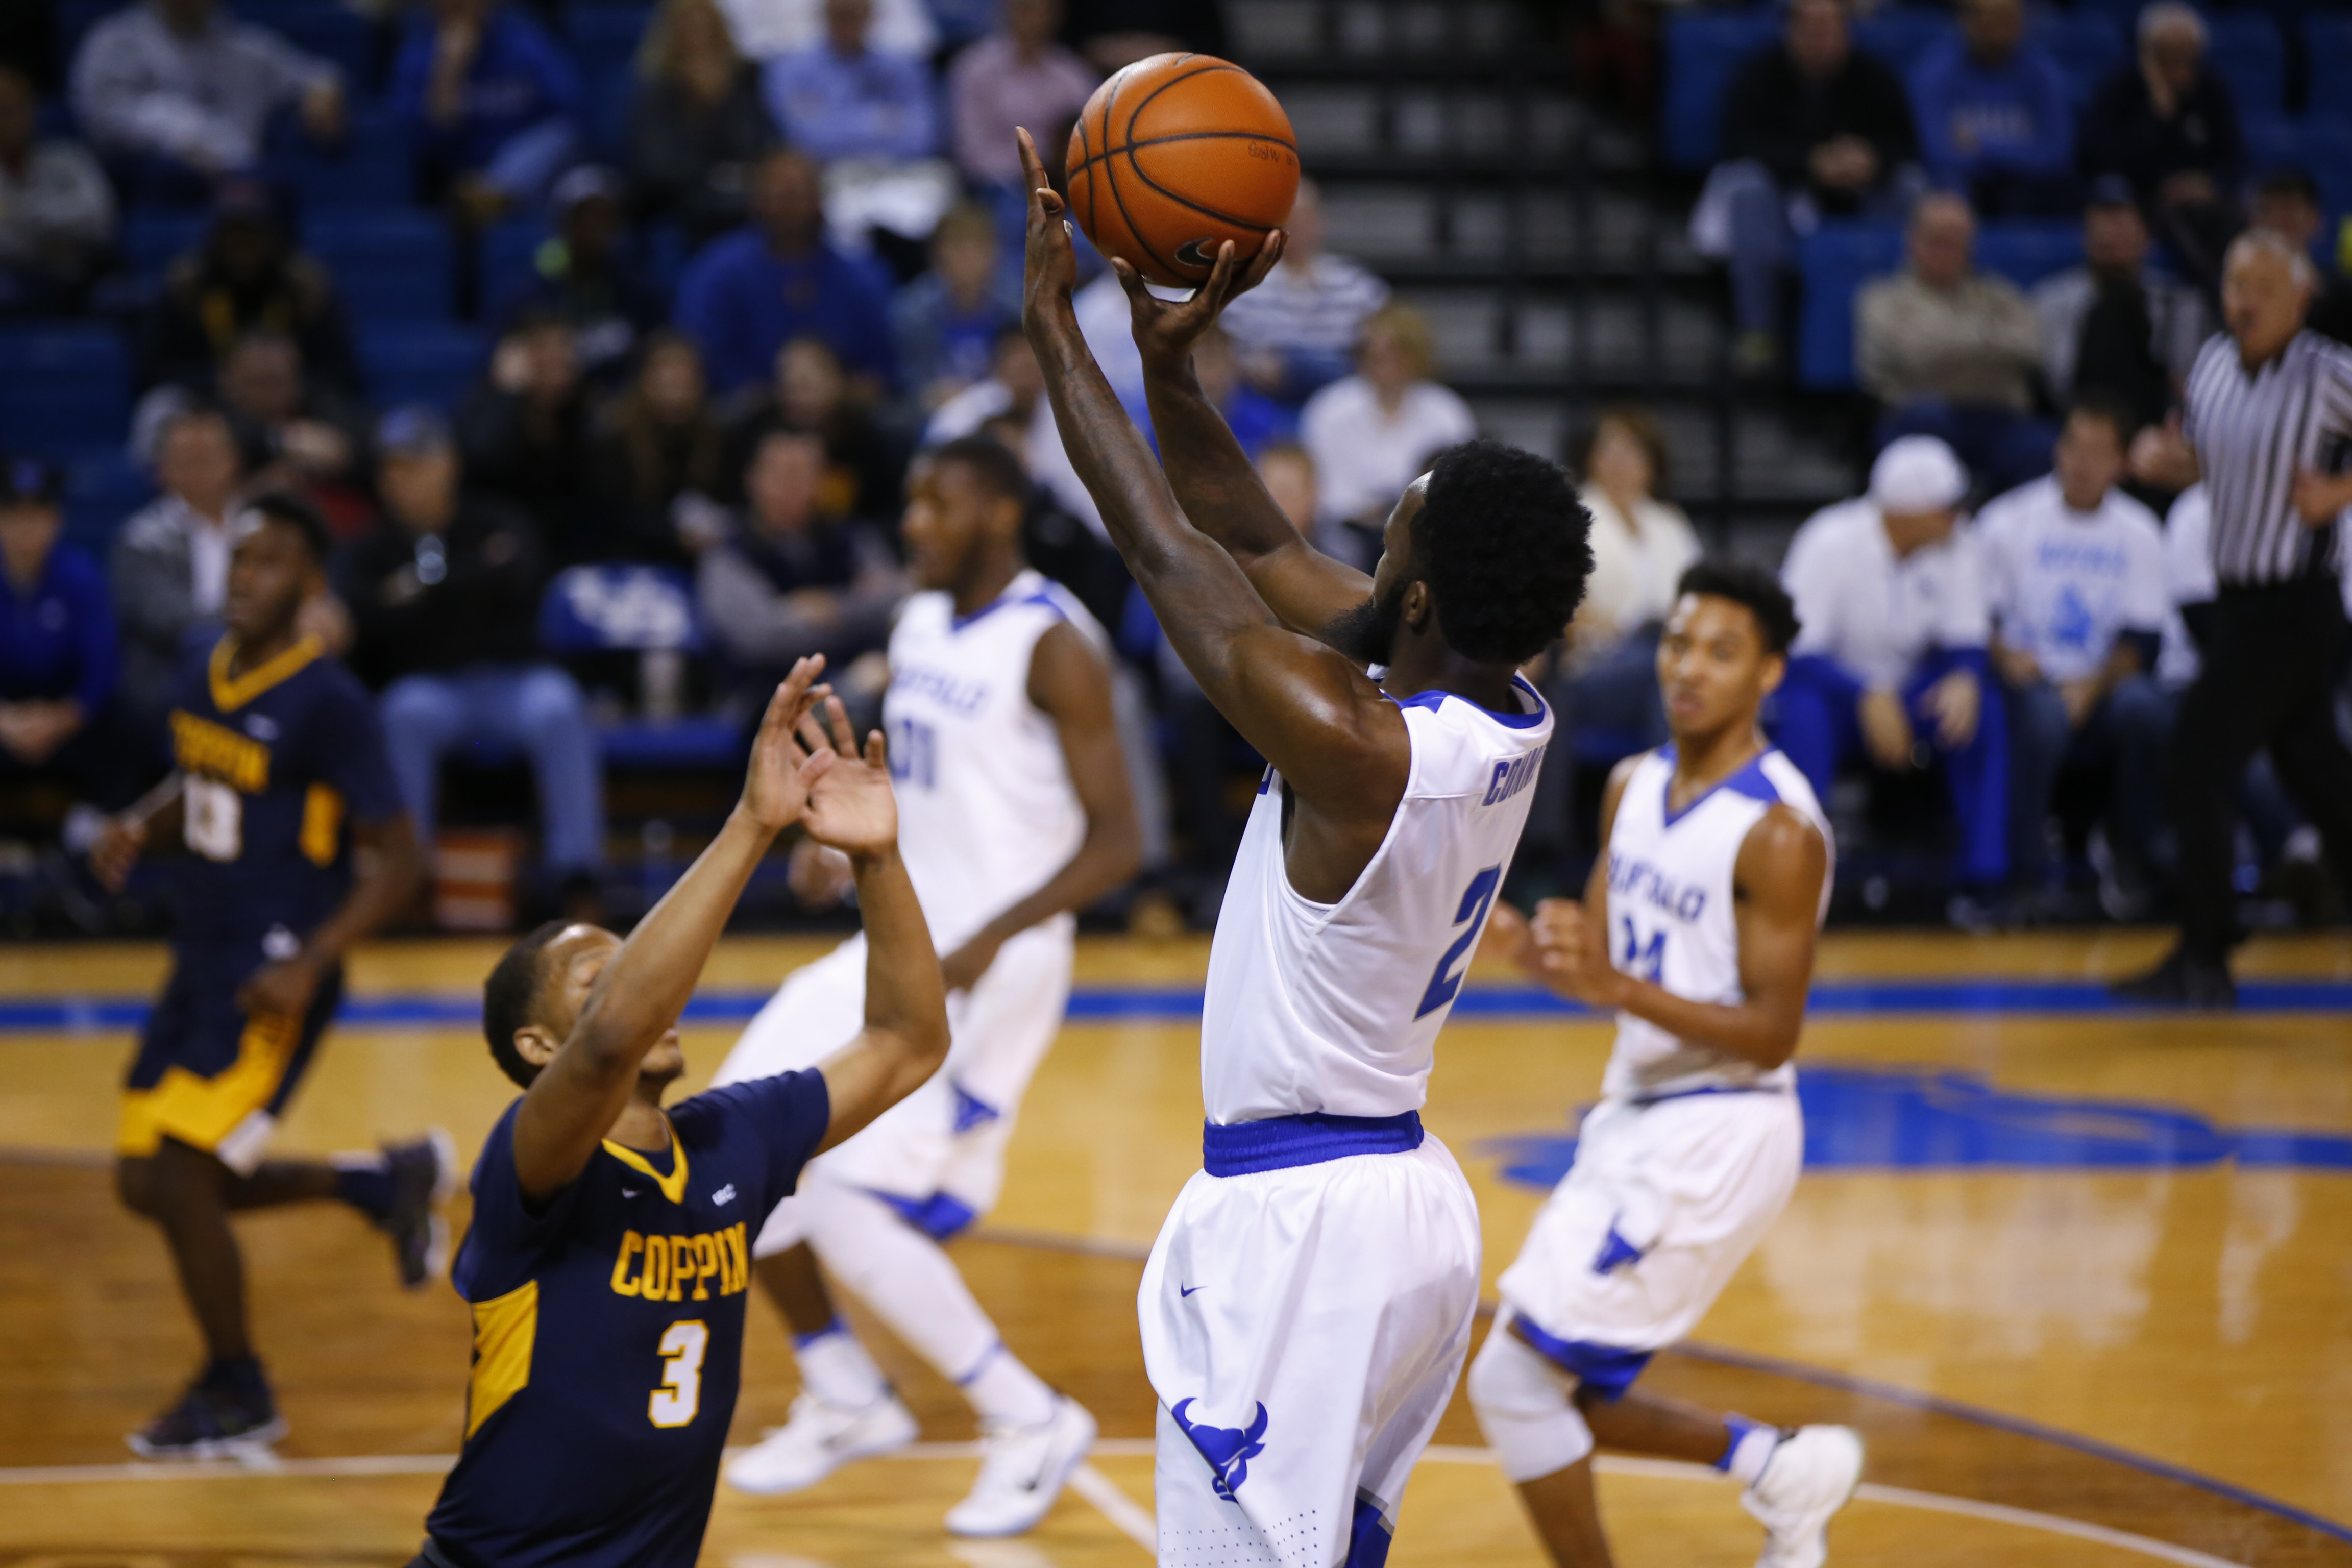 University at Buffalo's Willie Conner shoots a three point basket against Coppin State during second half action at Alumni Arena. (Harry Scull Jr./Buffalo News)